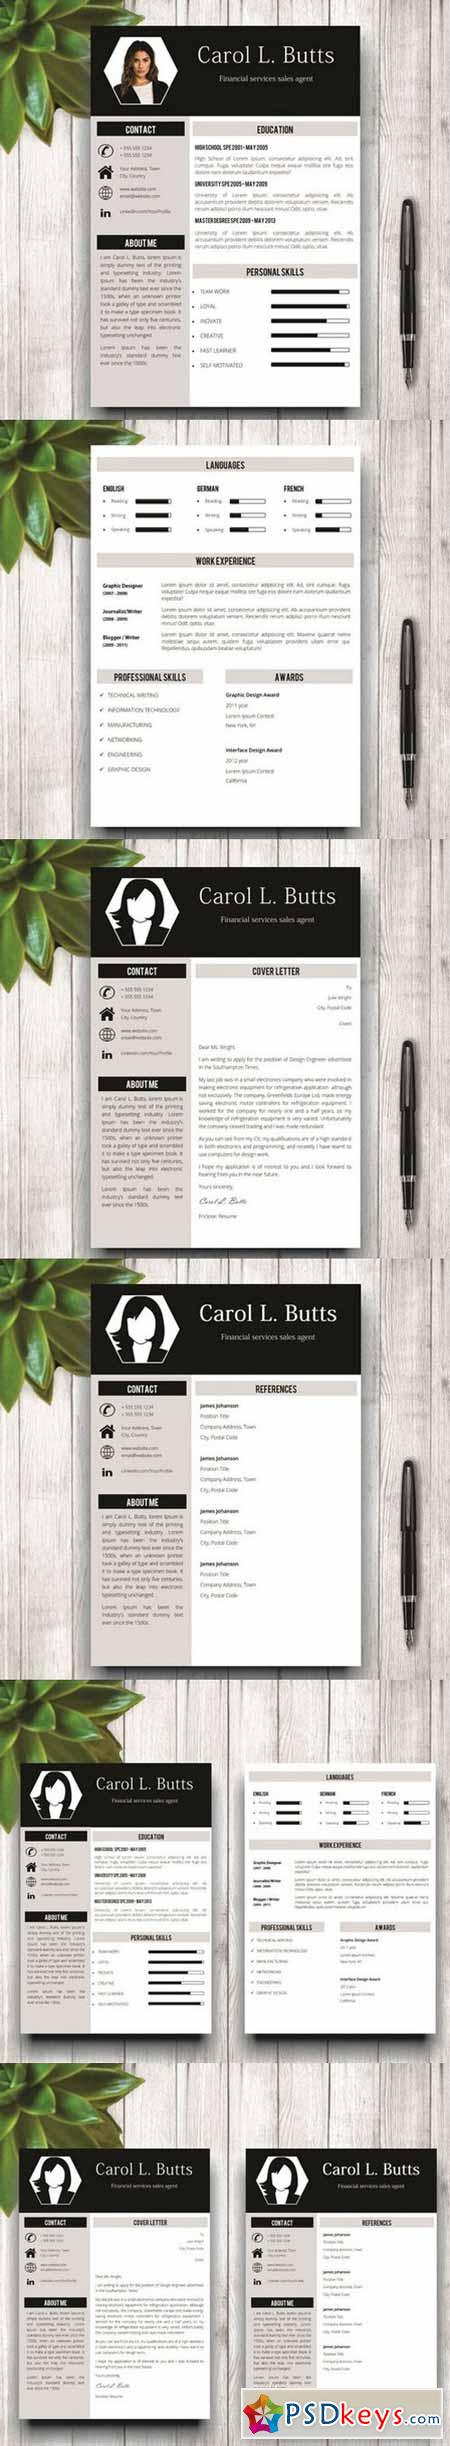 Clean Resume Template With Photo 589929